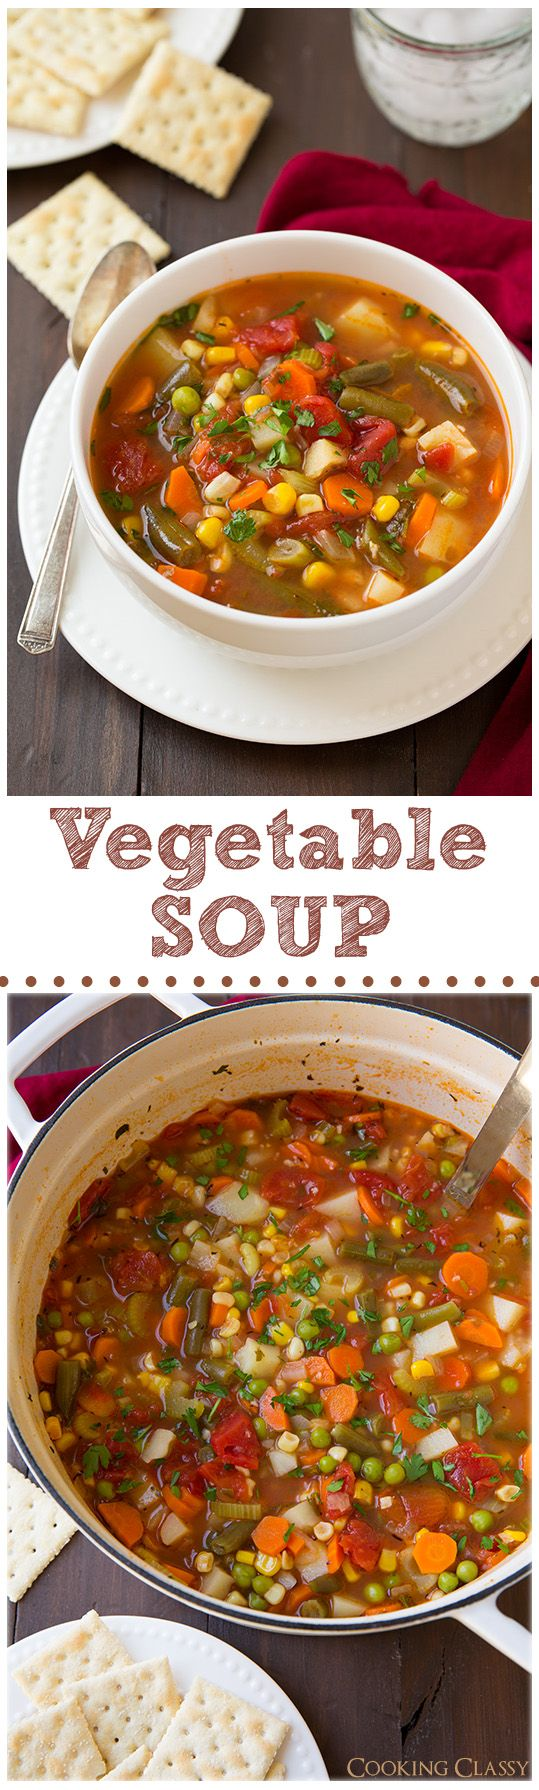 Vegetable Soup - 100x better than the canned stuff! This soup is amazing, I had 3 bowls! #soup #healthy #recipe